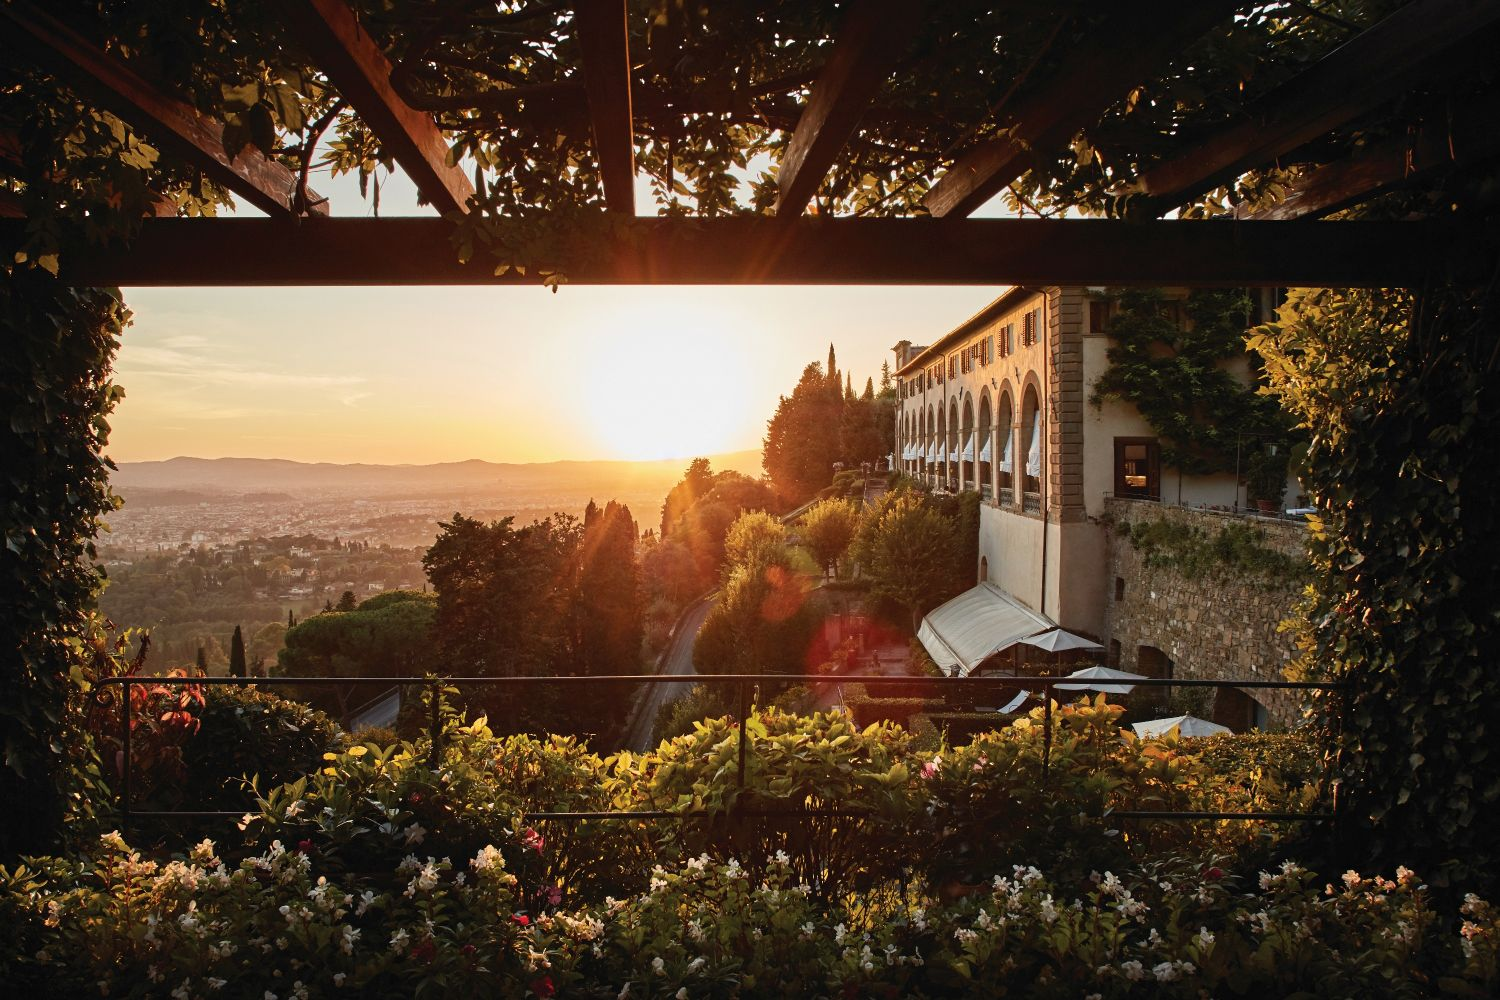 Belmond has created new Grand Tour routes across Europe aboard the stunning Venice Simplon-Orient Express luxury train.